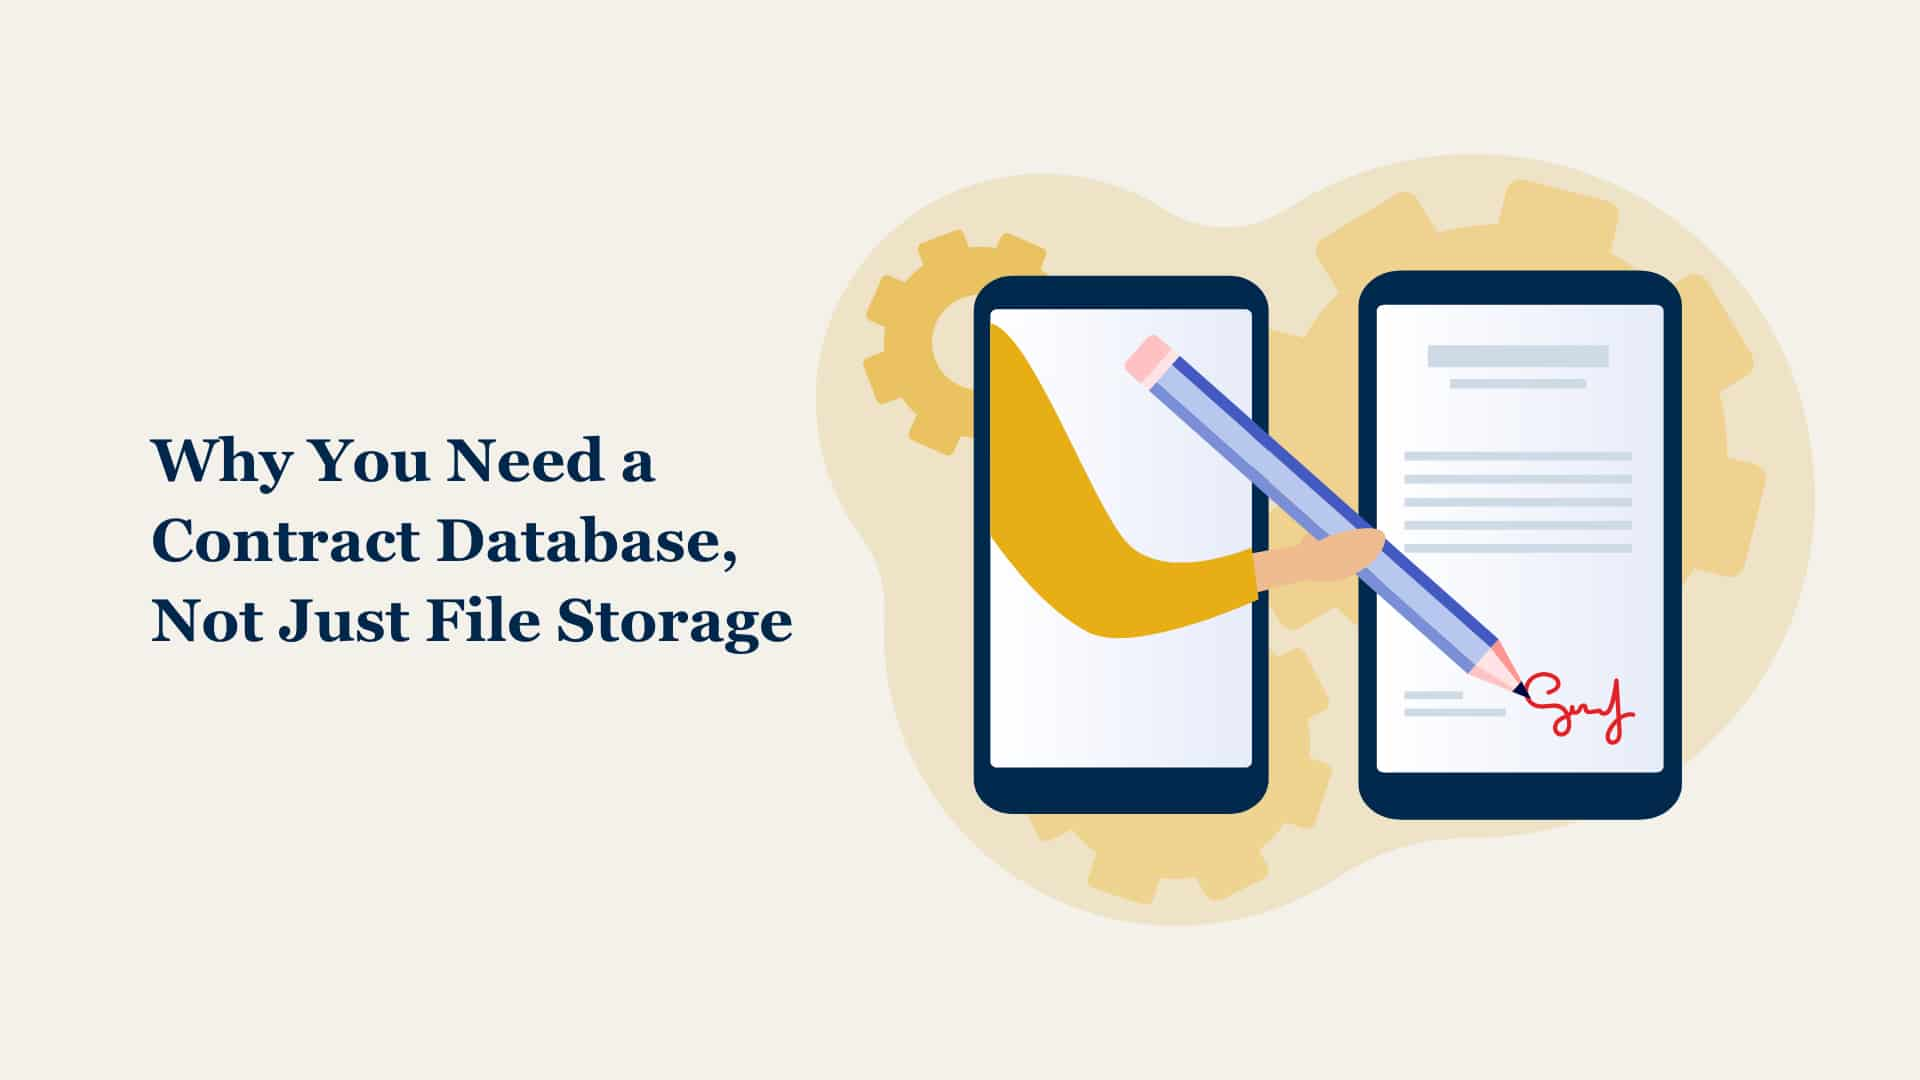 Why you need a contract database